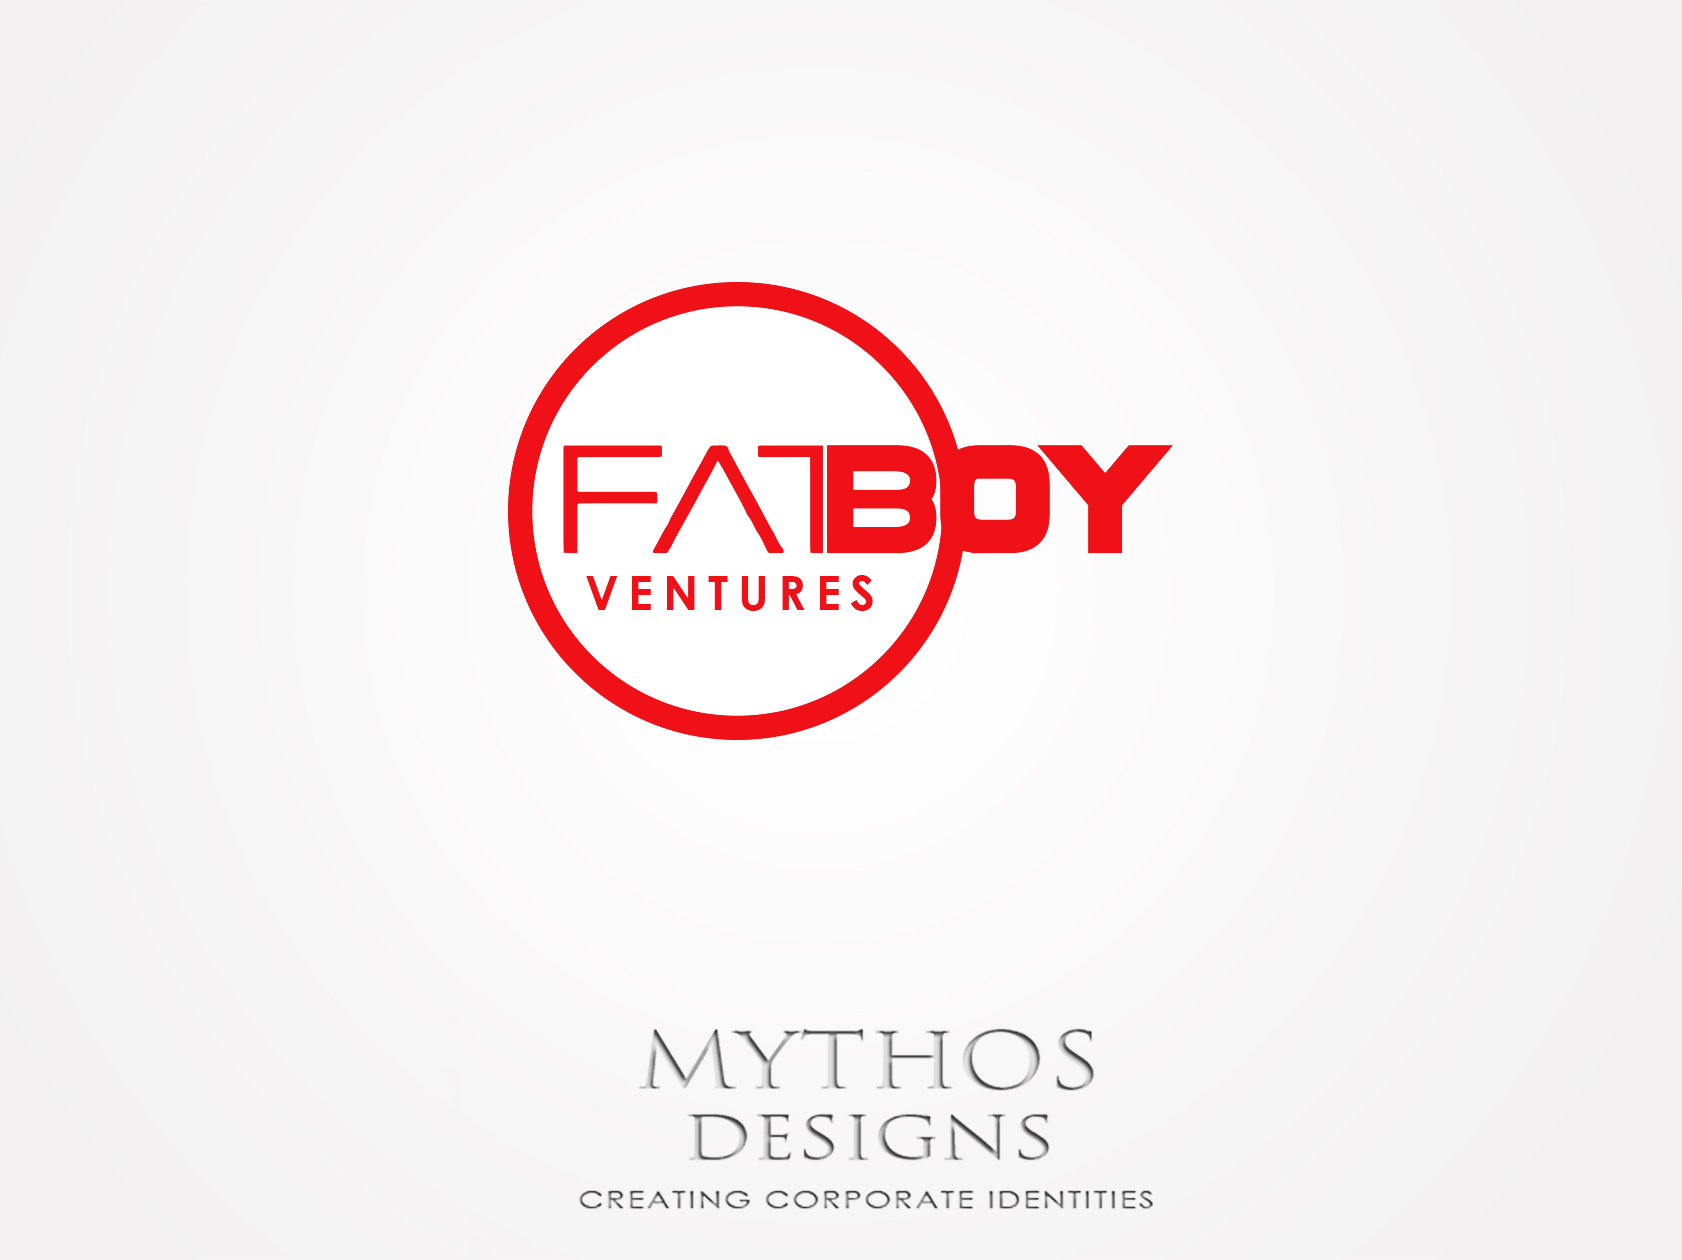 Logo Design by Mythos Designs - Entry No. 133 in the Logo Design Contest Fun Logo Design for Fat Boy Ventures.